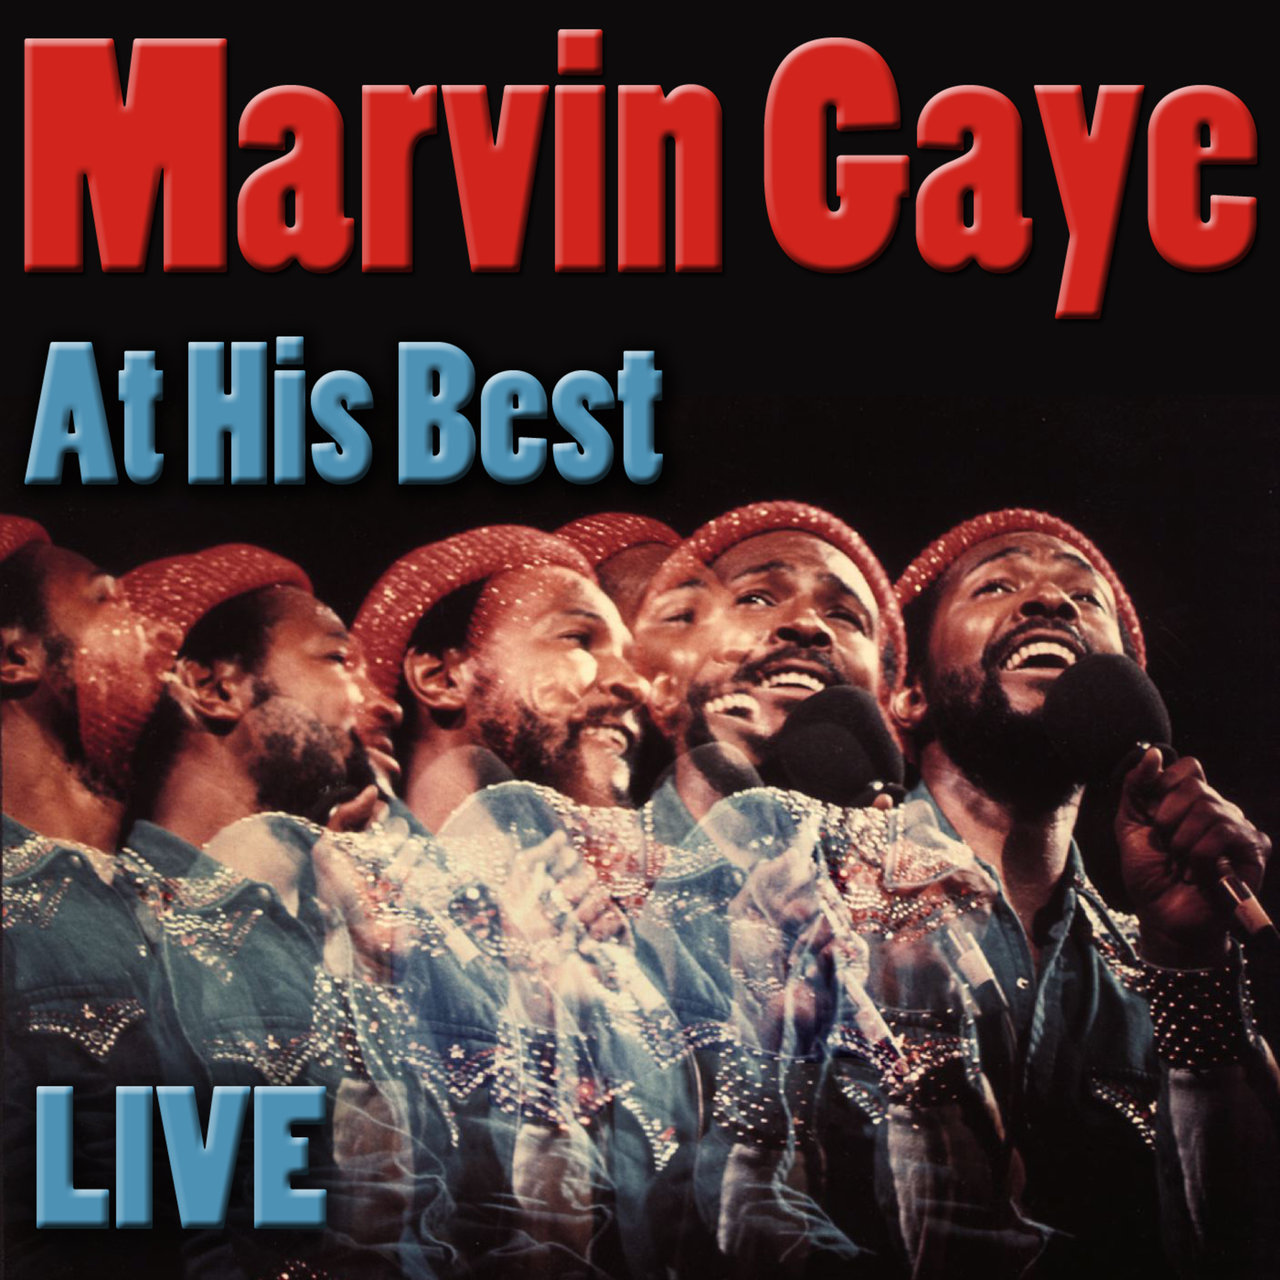 Marvin Gaye At His Best